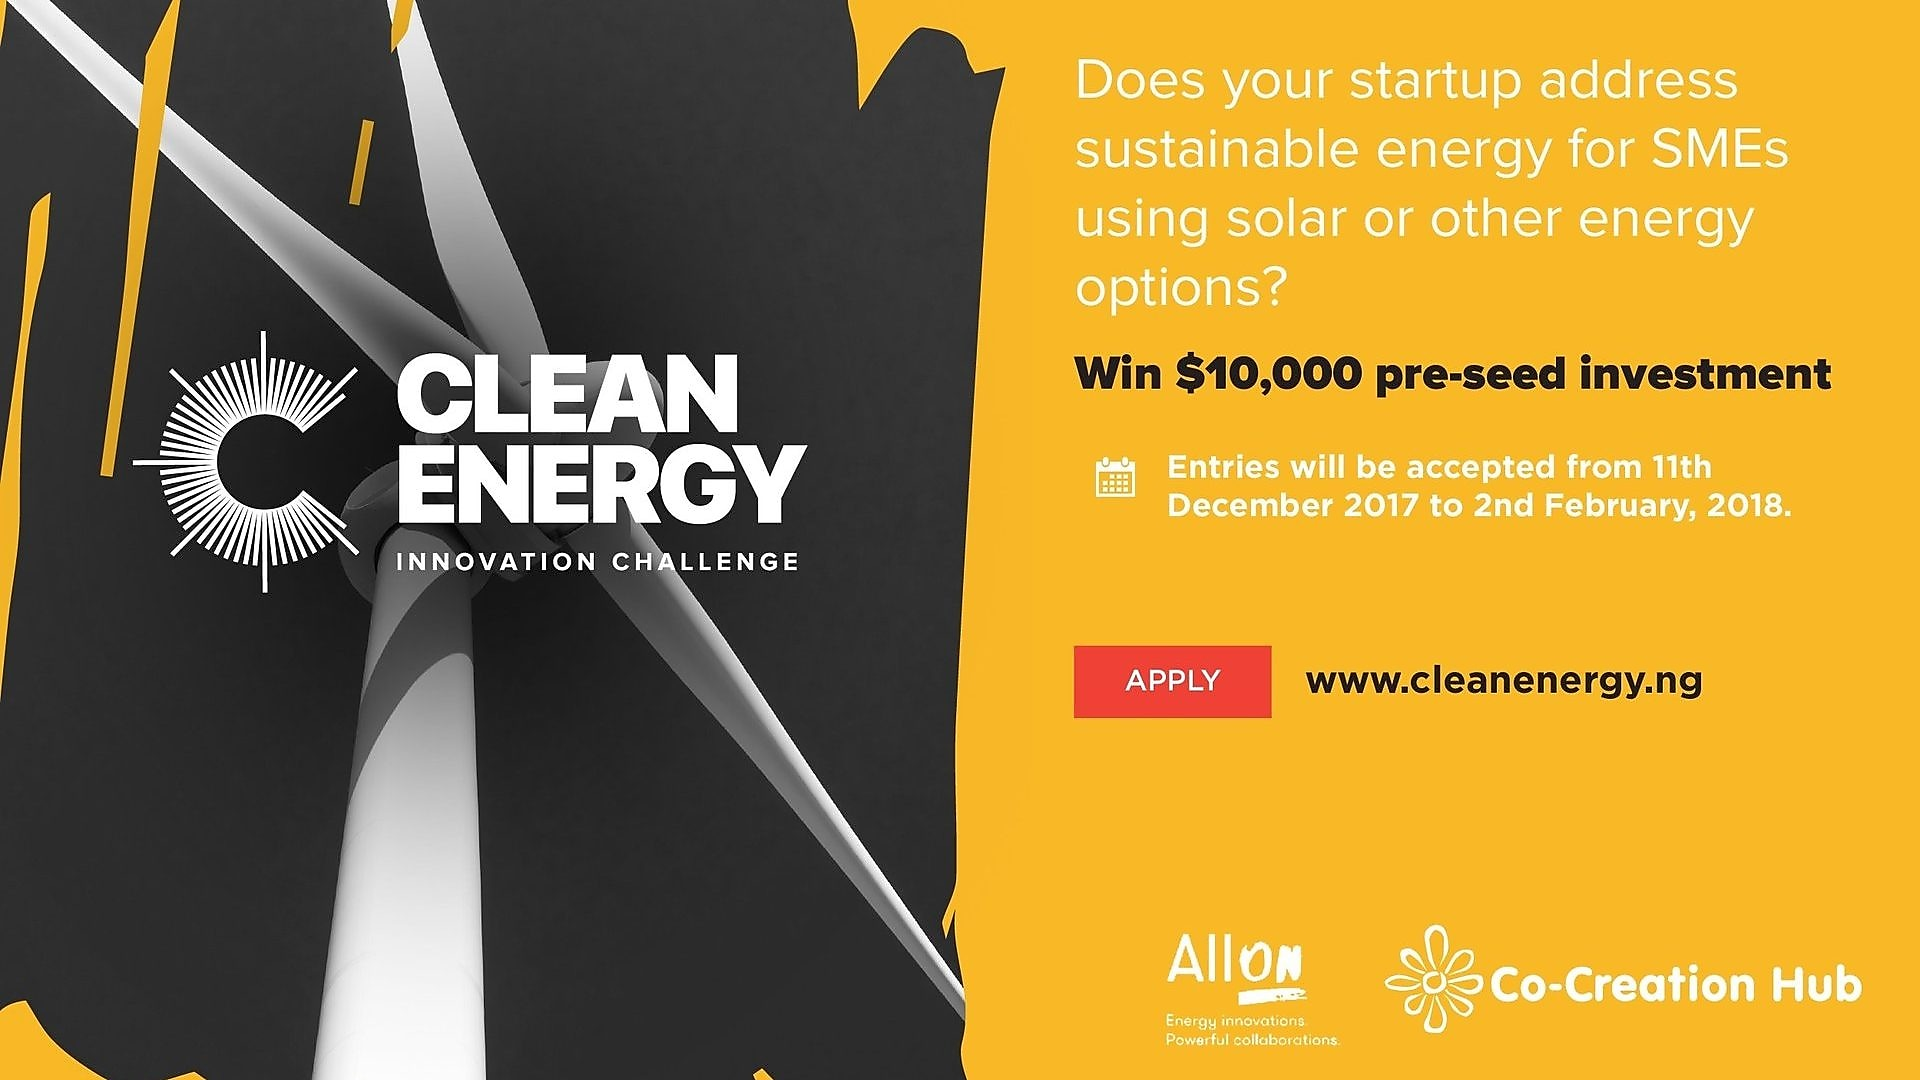 Clean Energy Innovation Challenge